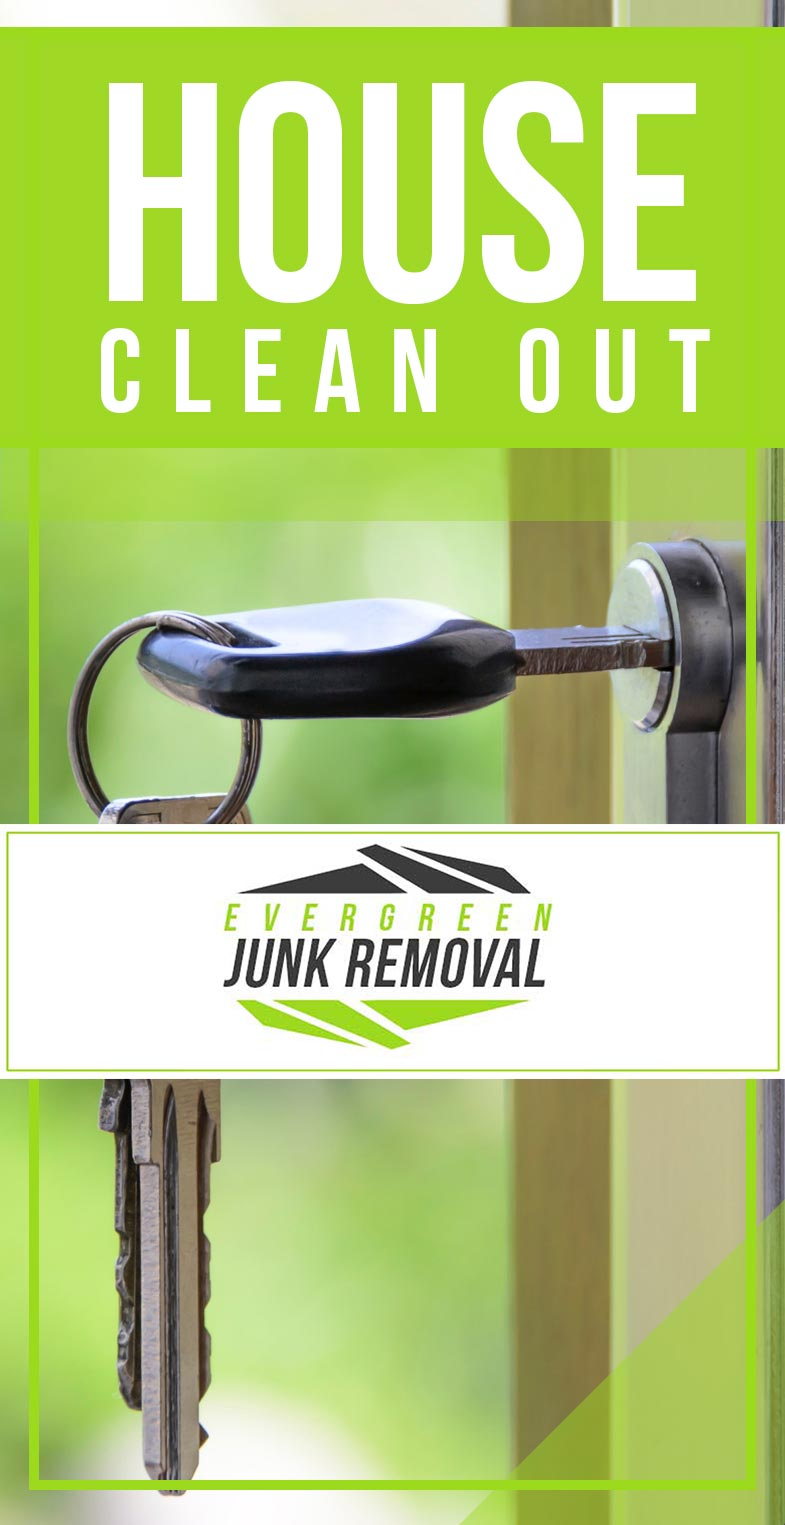 Junk Removal Cooper City House Clean Out